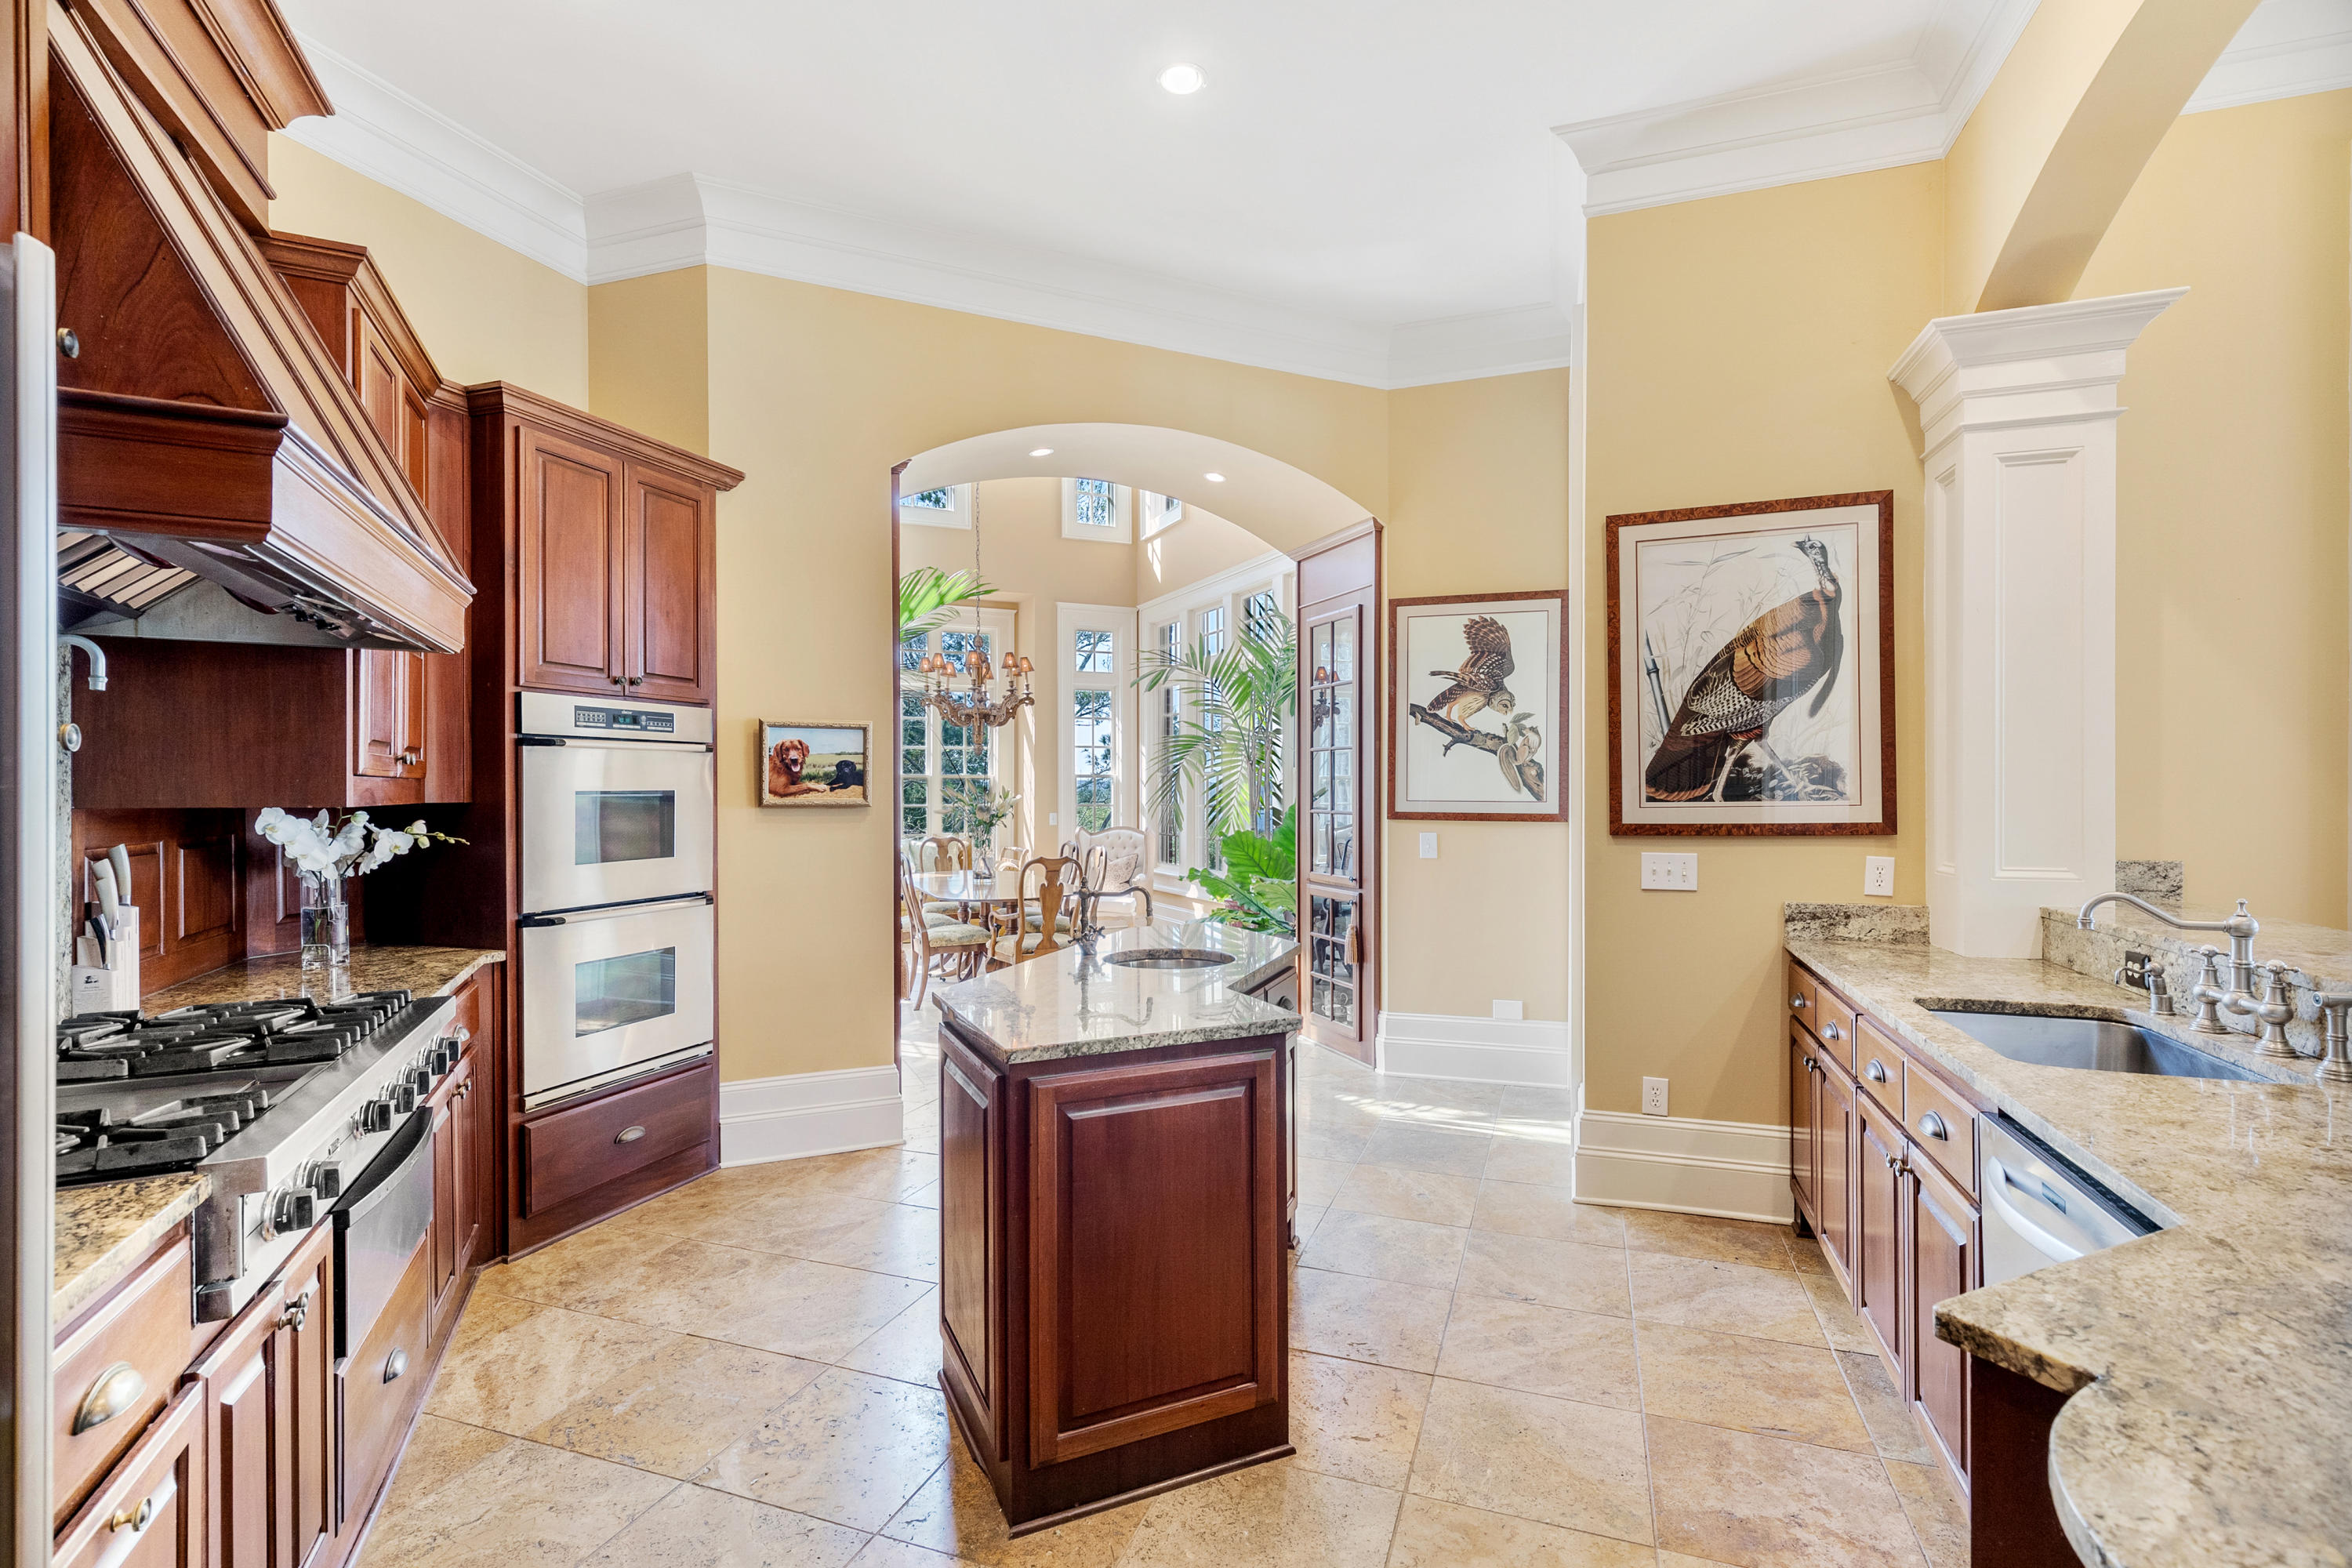 Ravens Bluff Homes For Sale - 5150 Chisolm, Johns Island, SC - 49